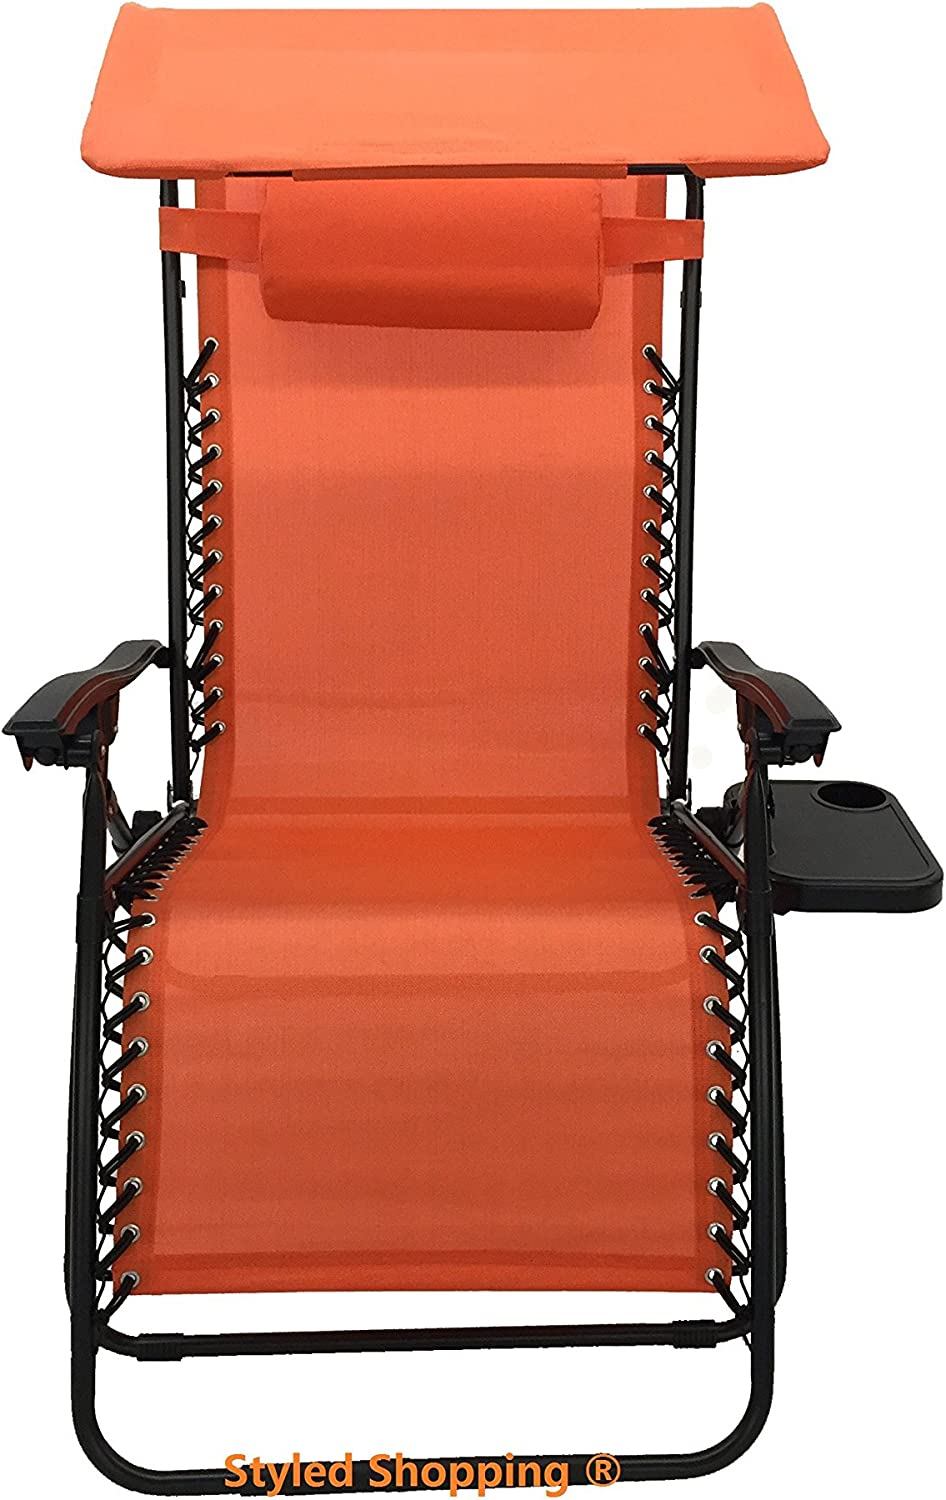 Deluxe Oversized Extra Large Zero Gravity Chair with Canopy + Tray - Orange